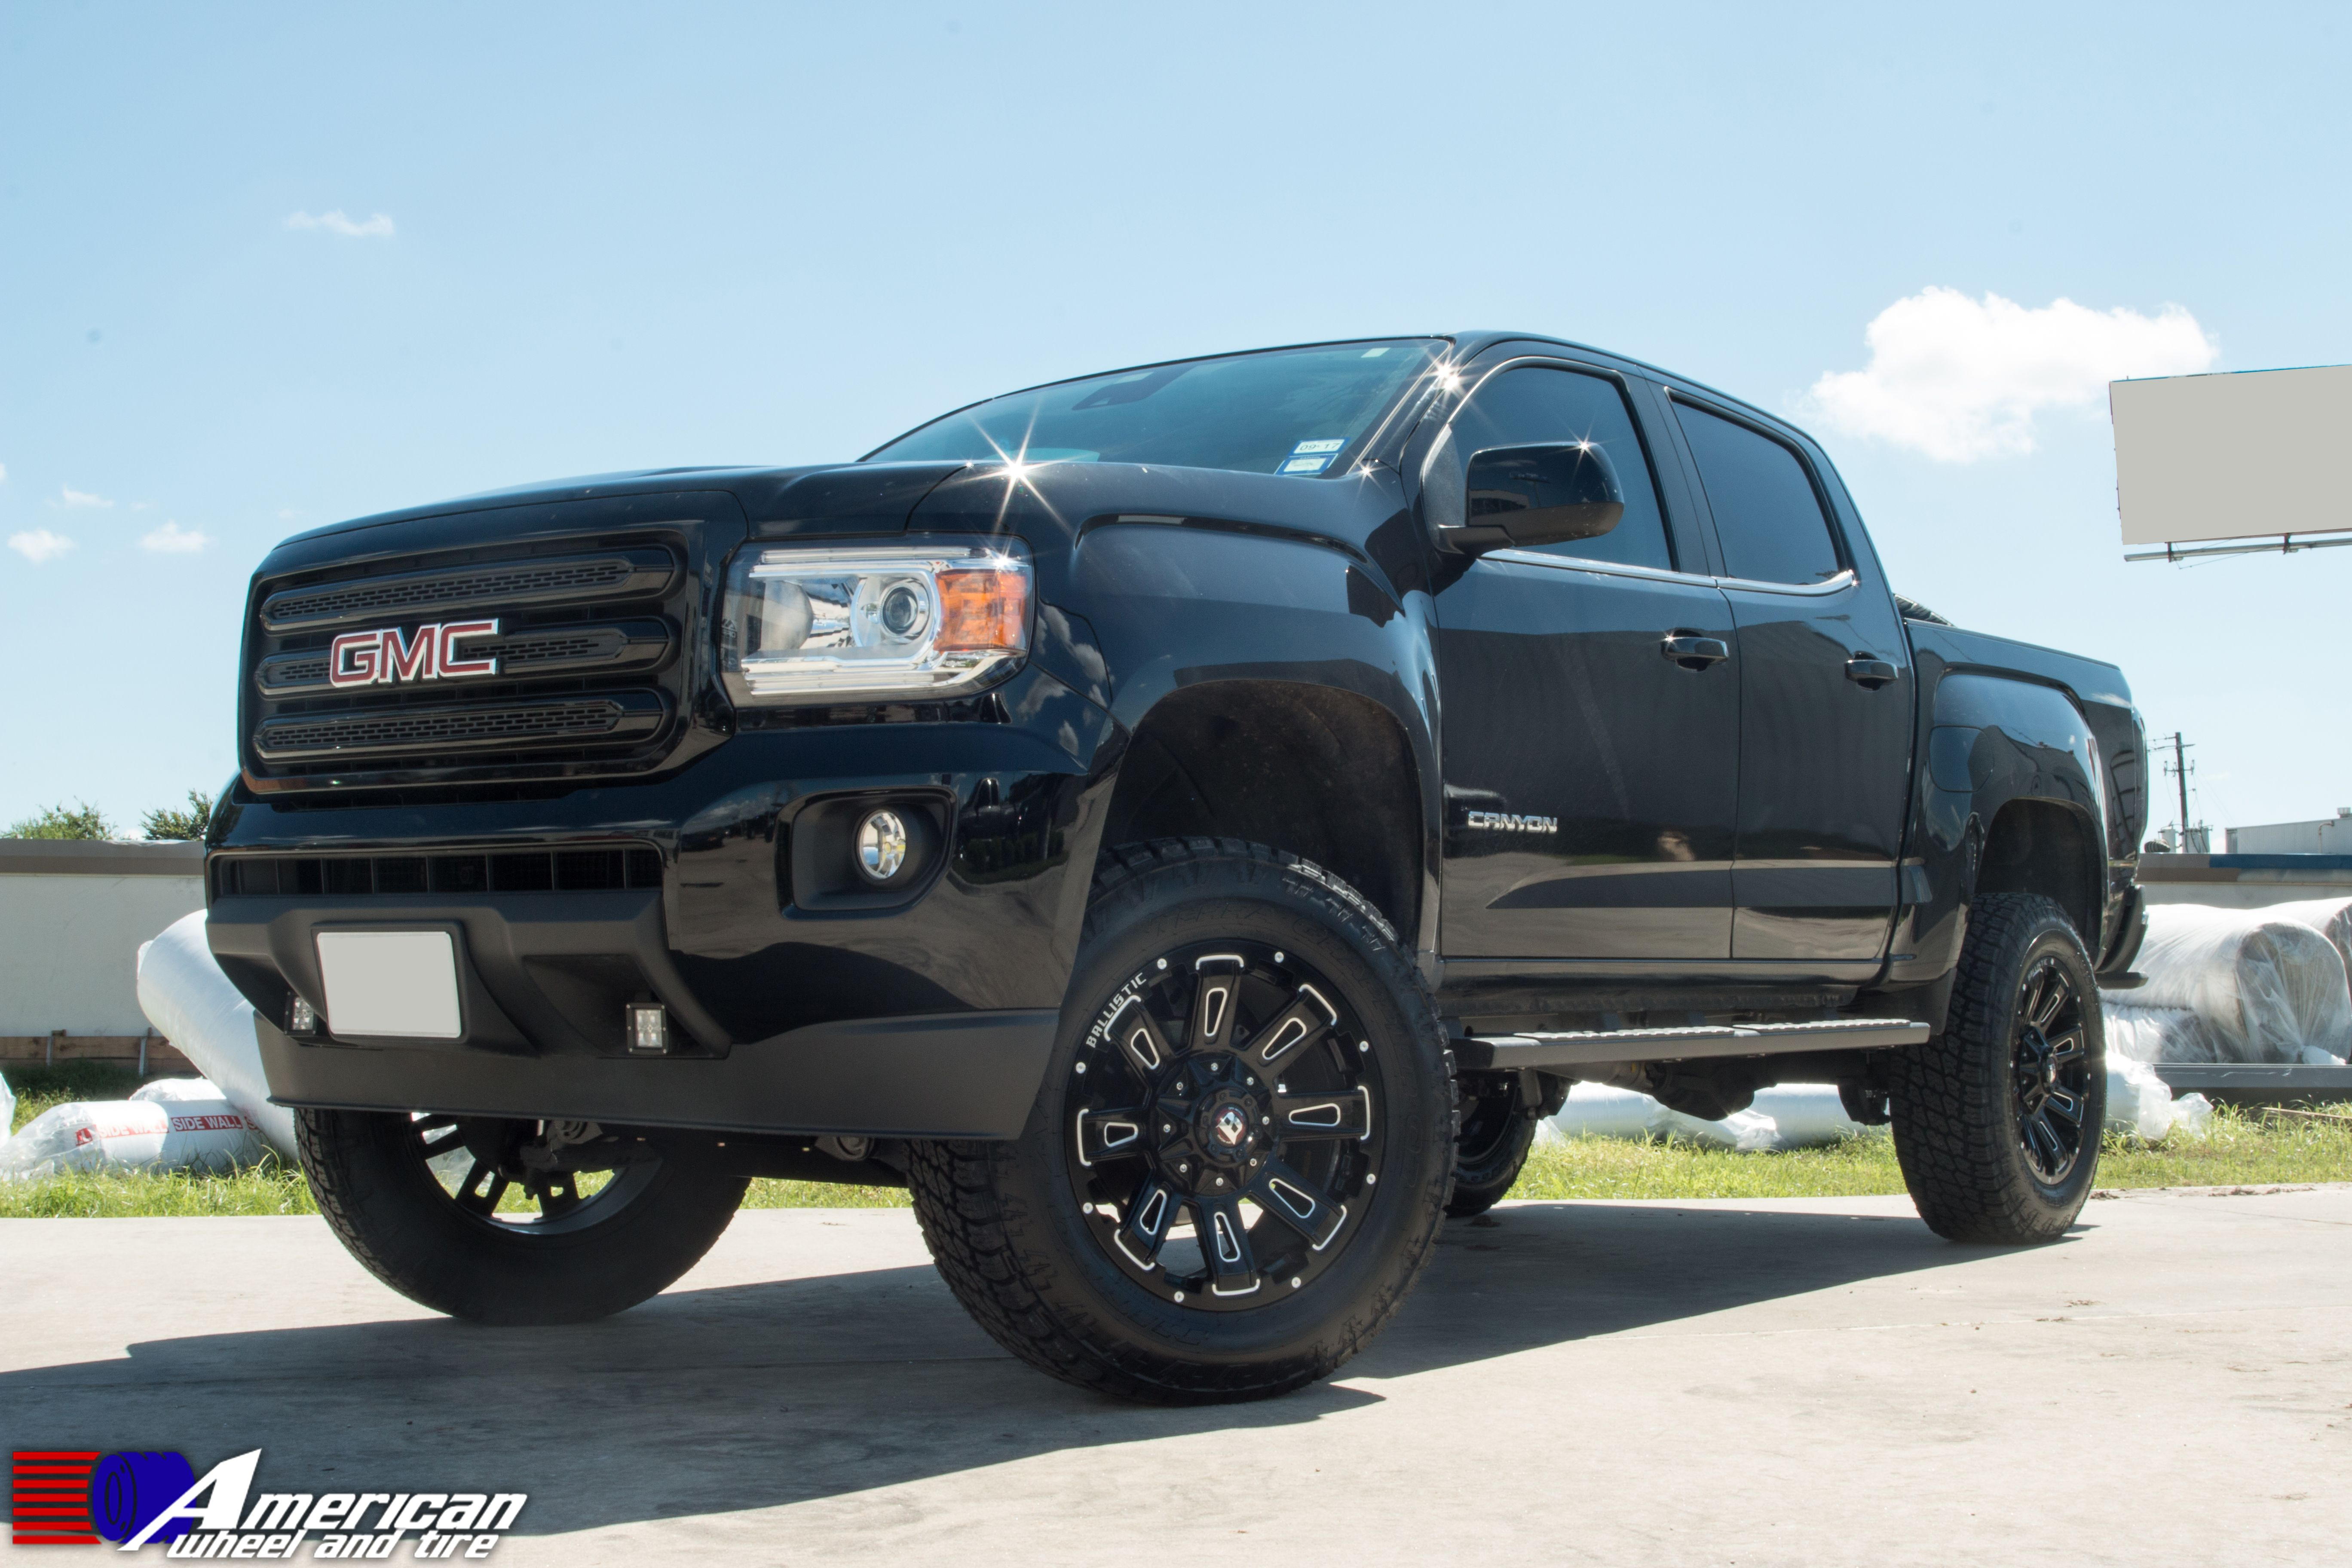 2015 Gmc Canyon Complete With 4 Lift Kit 20 Ballistic Wheels